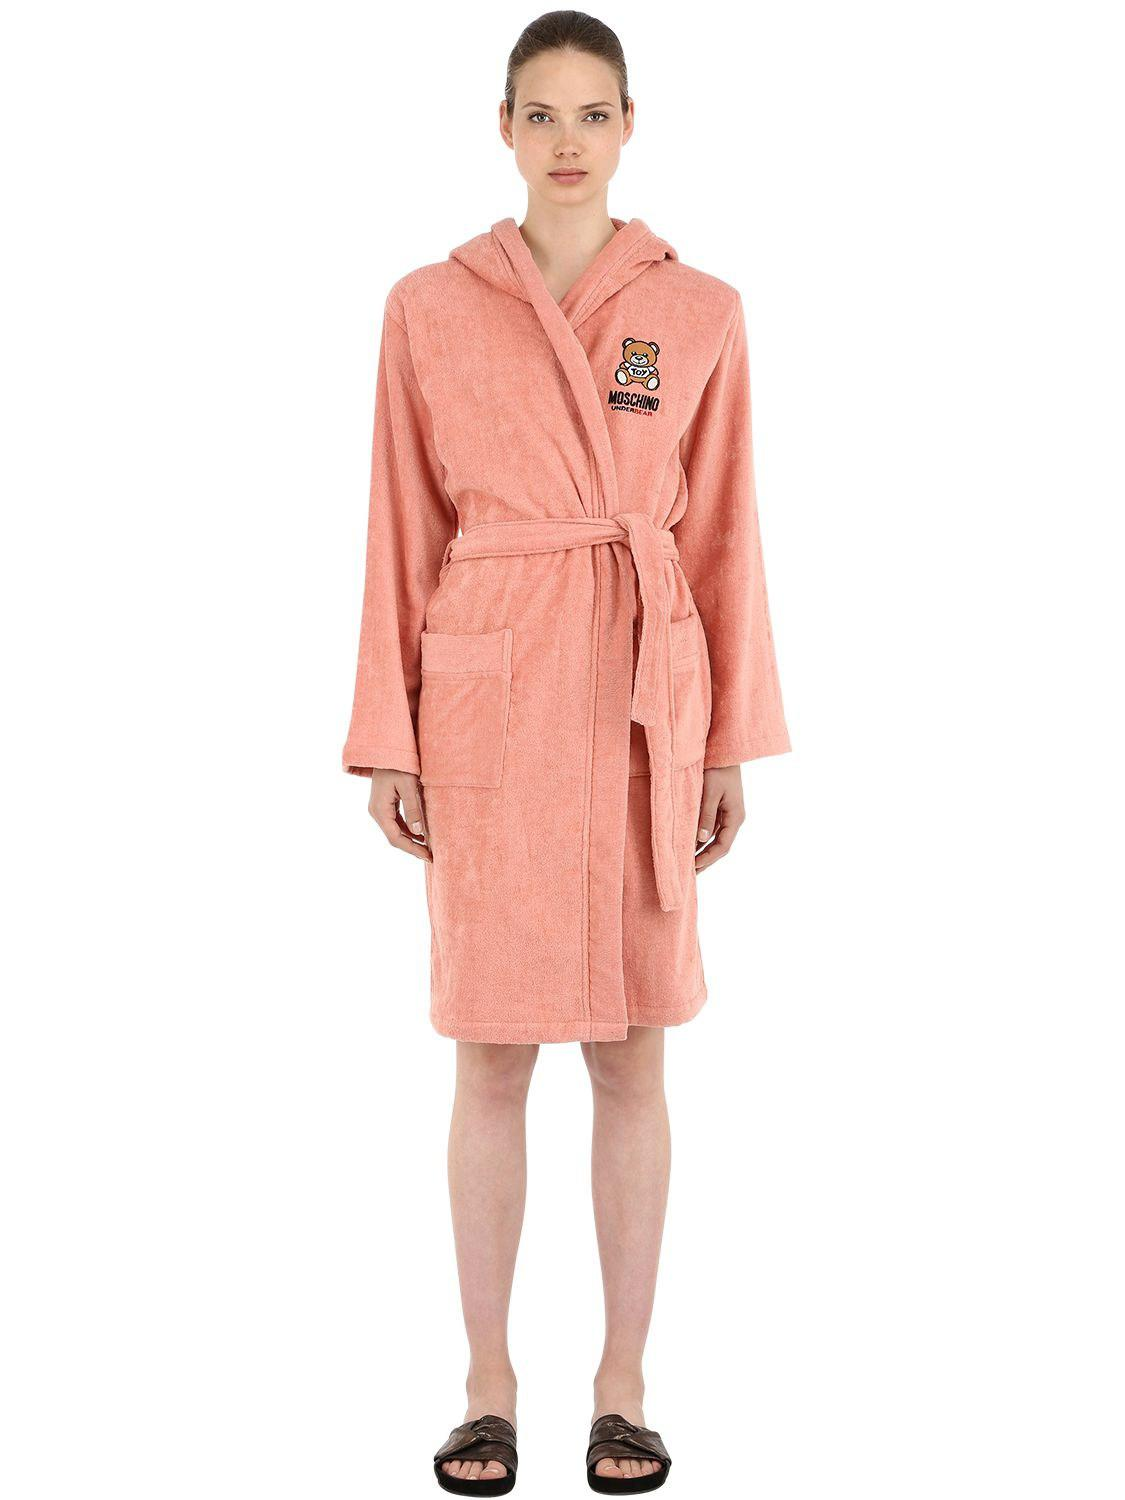 Moschino Underbear Cotton Bathrobe in Pink - Lyst 4685dedca